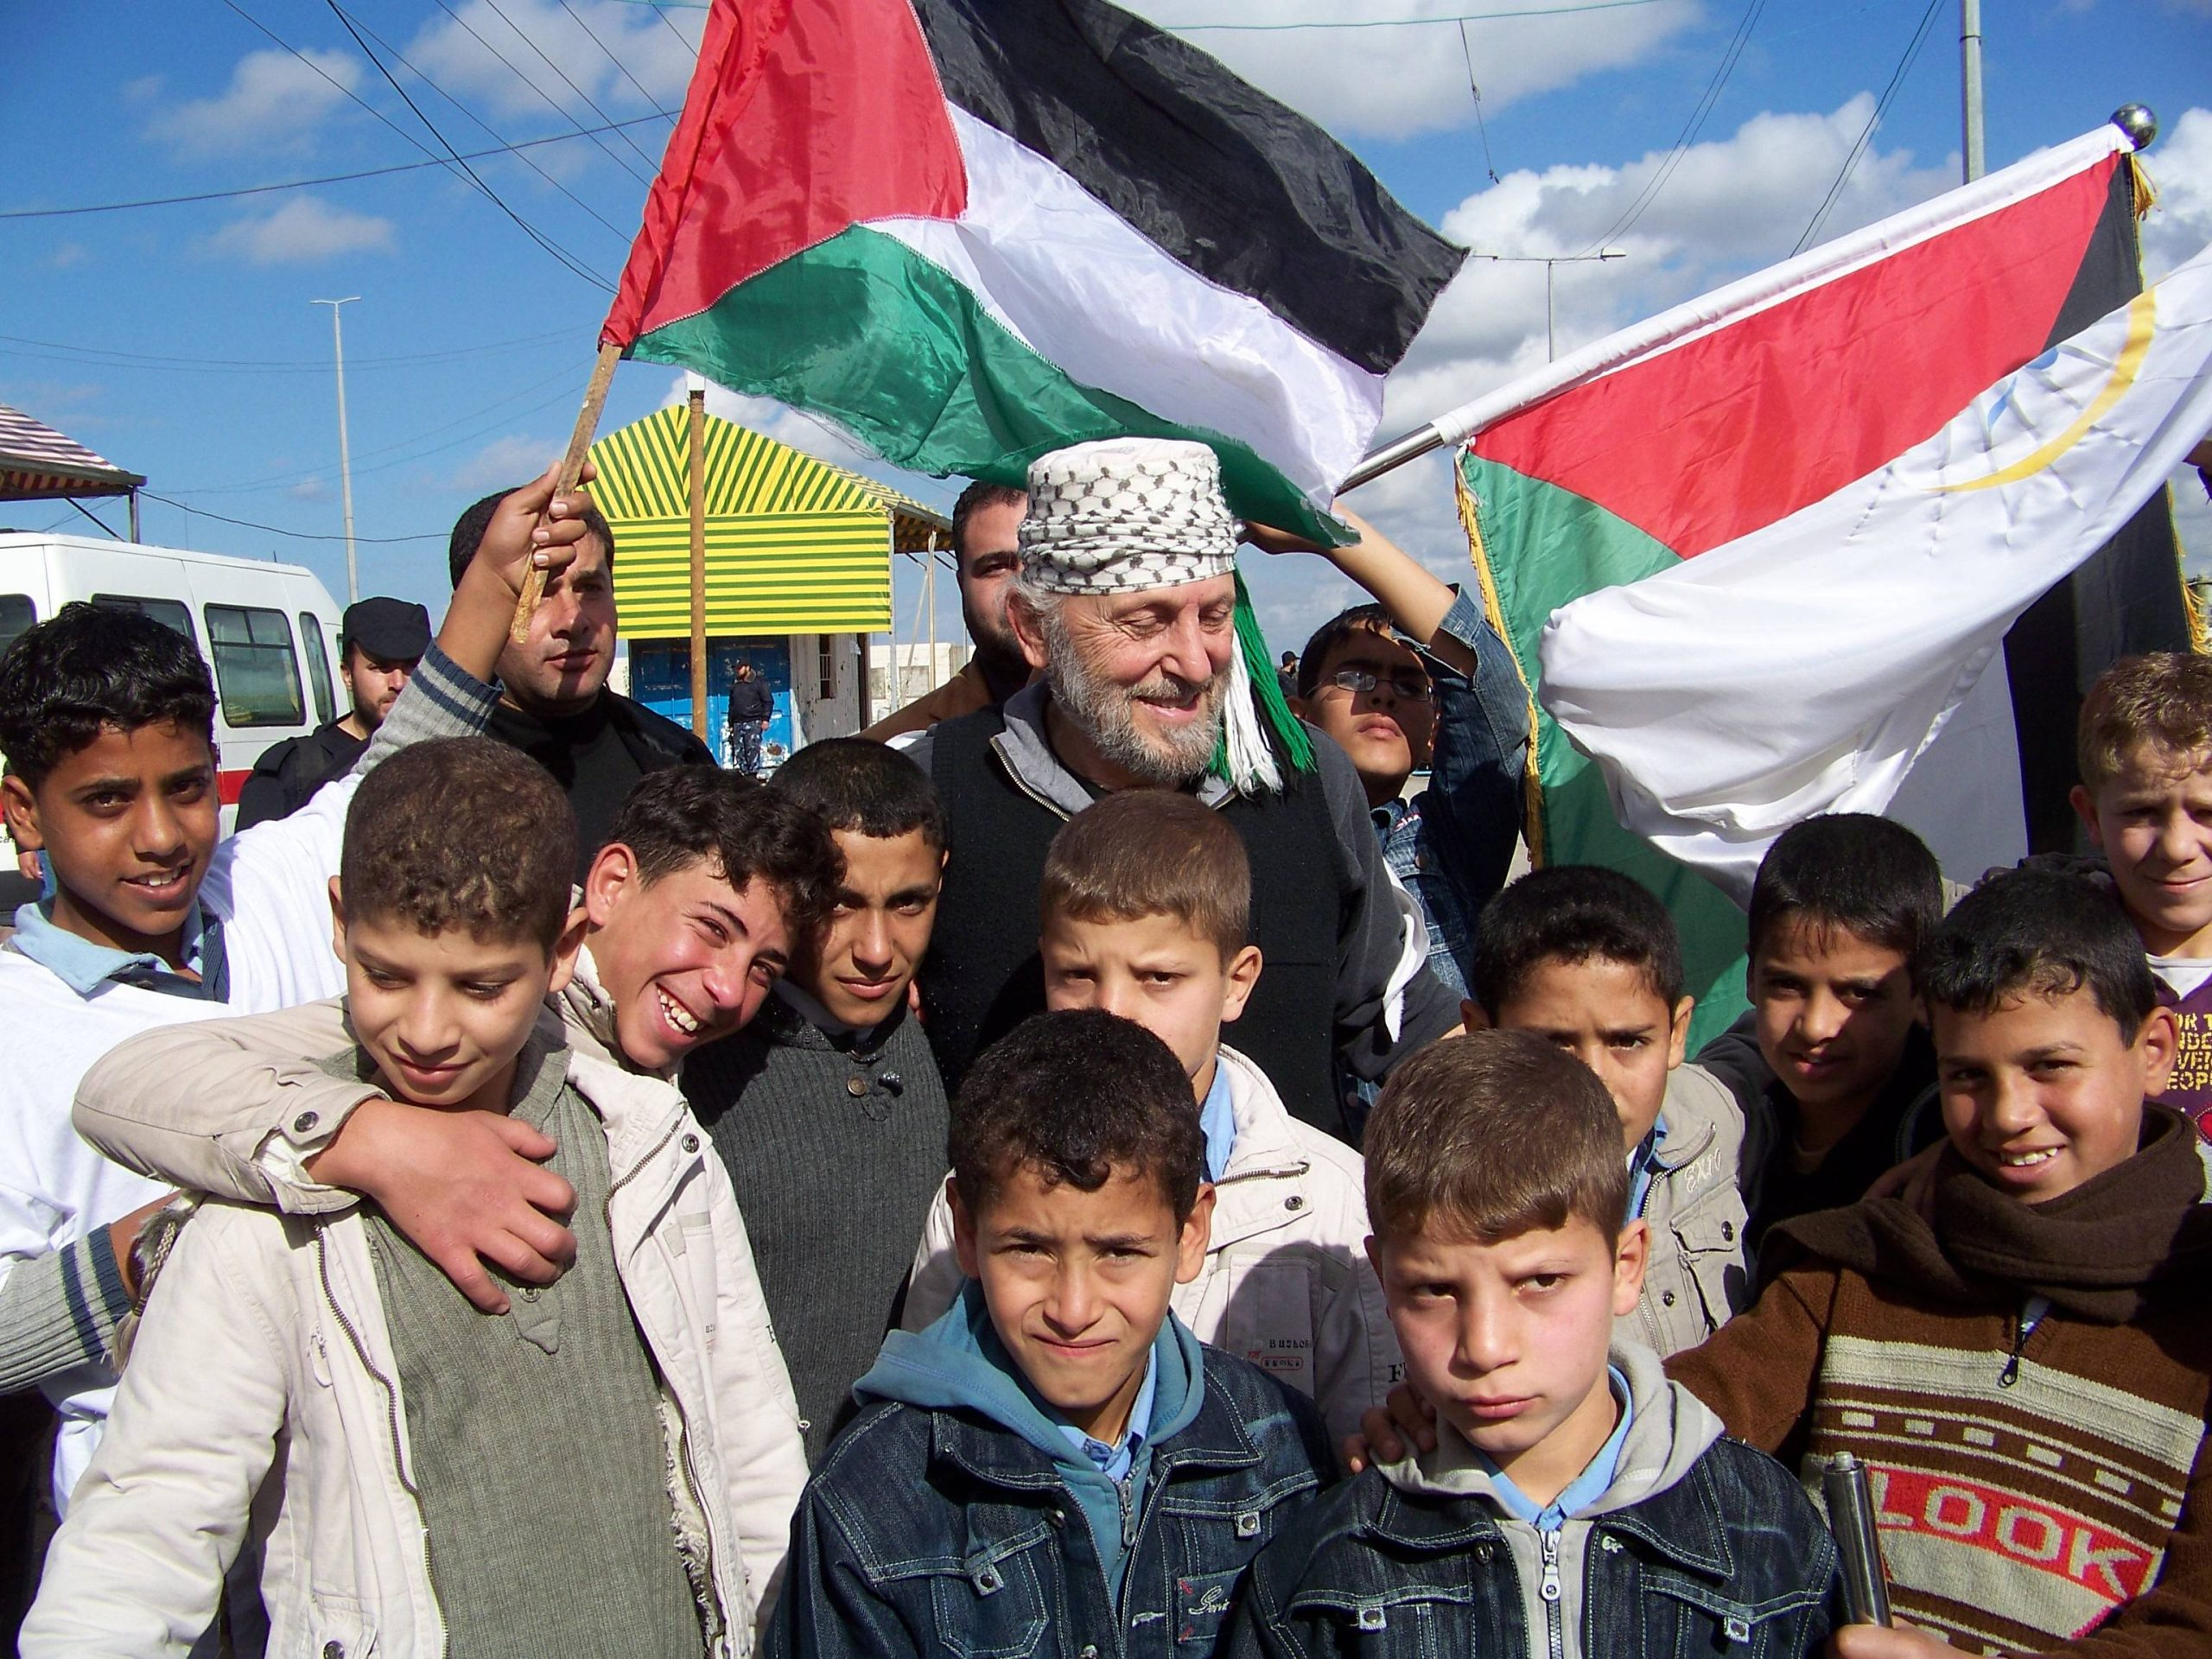 Yusif with Palestinian kids & flags